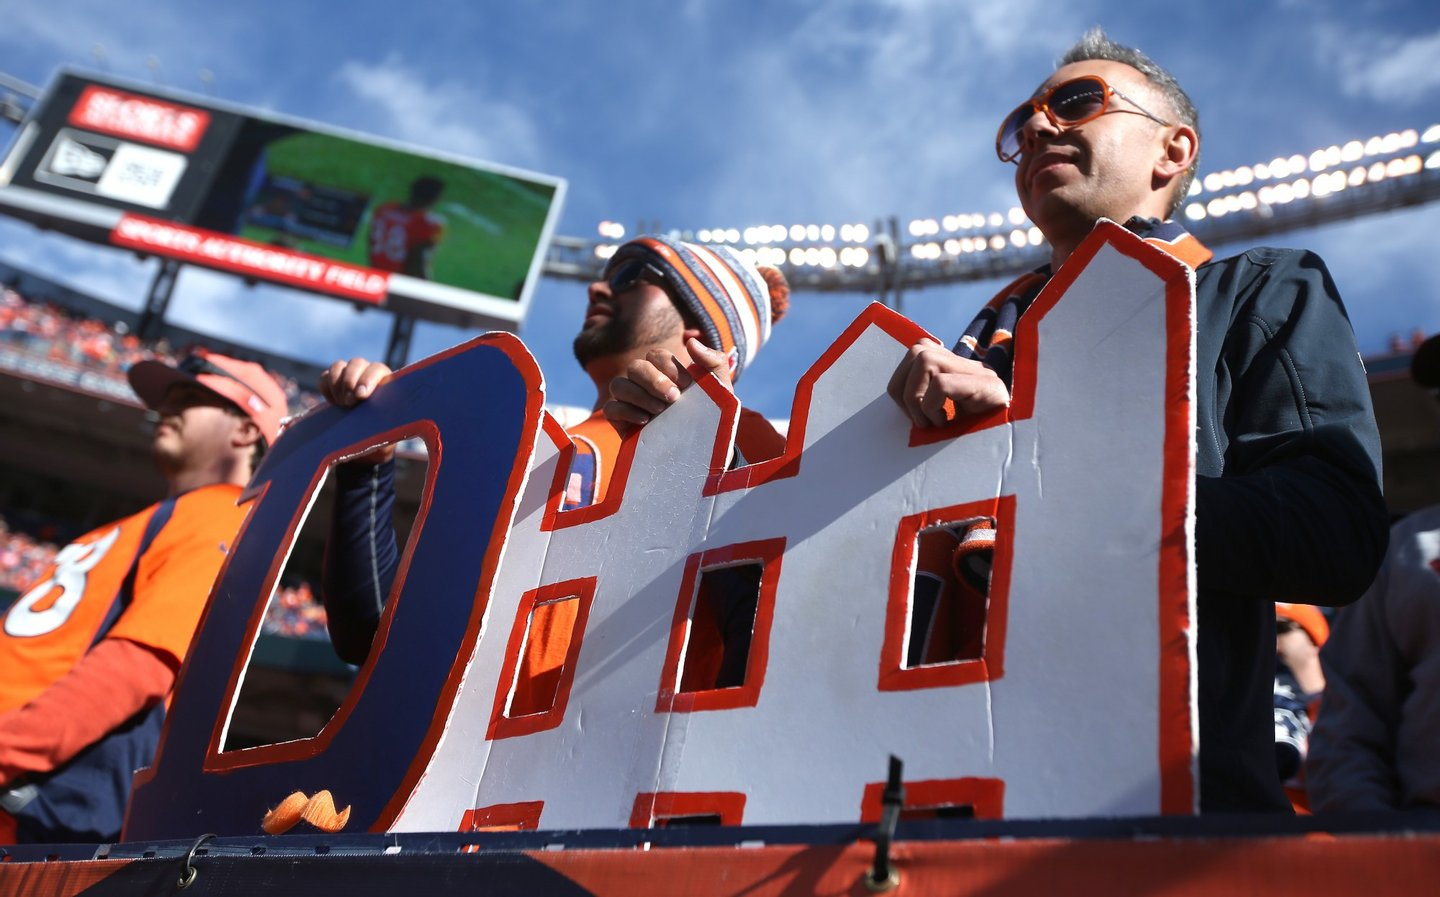 DENVER, CO - JANUARY 24: Fans hold a 'defense' sign prior to the AFC Championship game between the New England Patriots and the Denver Broncos at Sports Authority Field at Mile High on January 24, 2016 in Denver, Colorado. (Photo by Doug Pensinger/Getty Images)